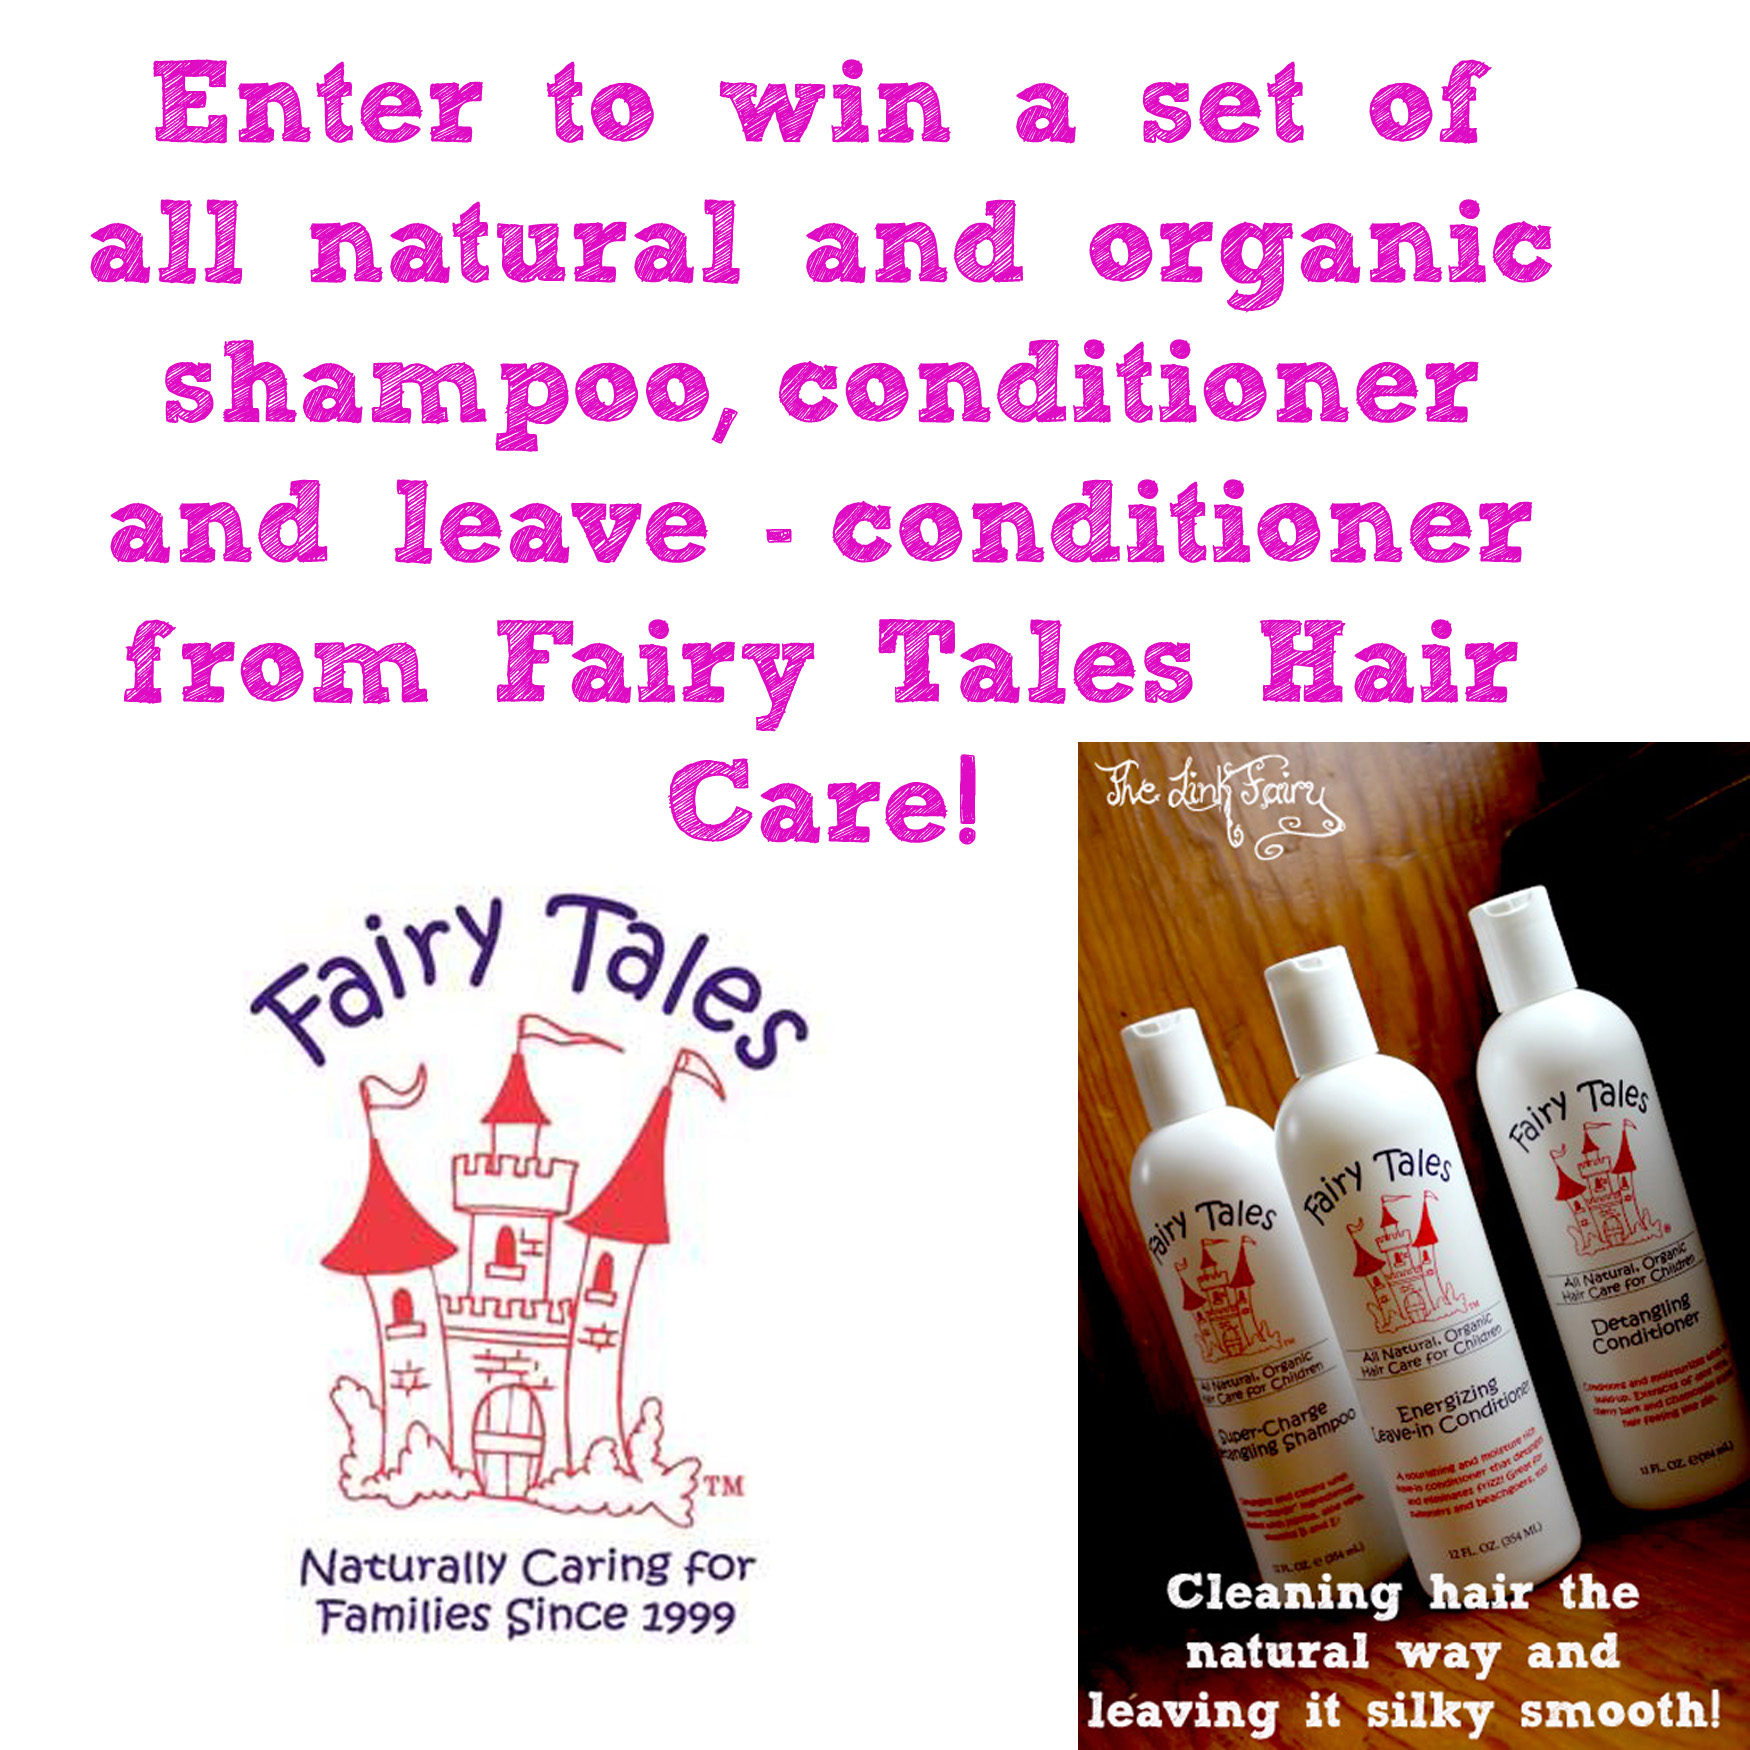 Silky Soft and Tangle Free Hair with Organic and All Natural, Fairy Tales Hair Care Products!